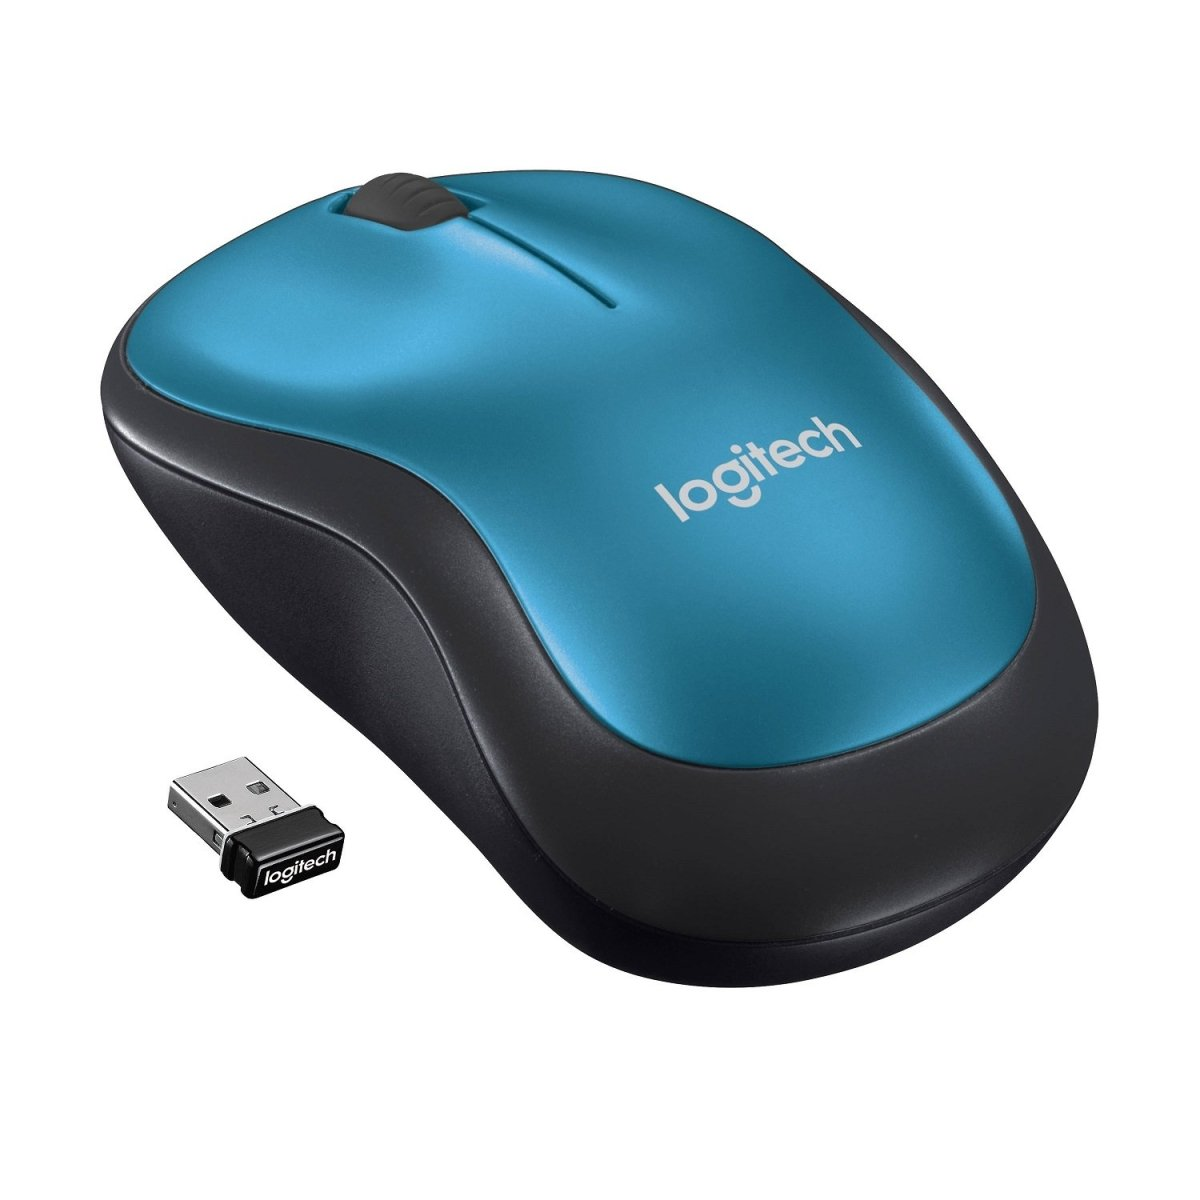 Mouse Inalámbrico Logitech M185 Wireless - Mundo Electro